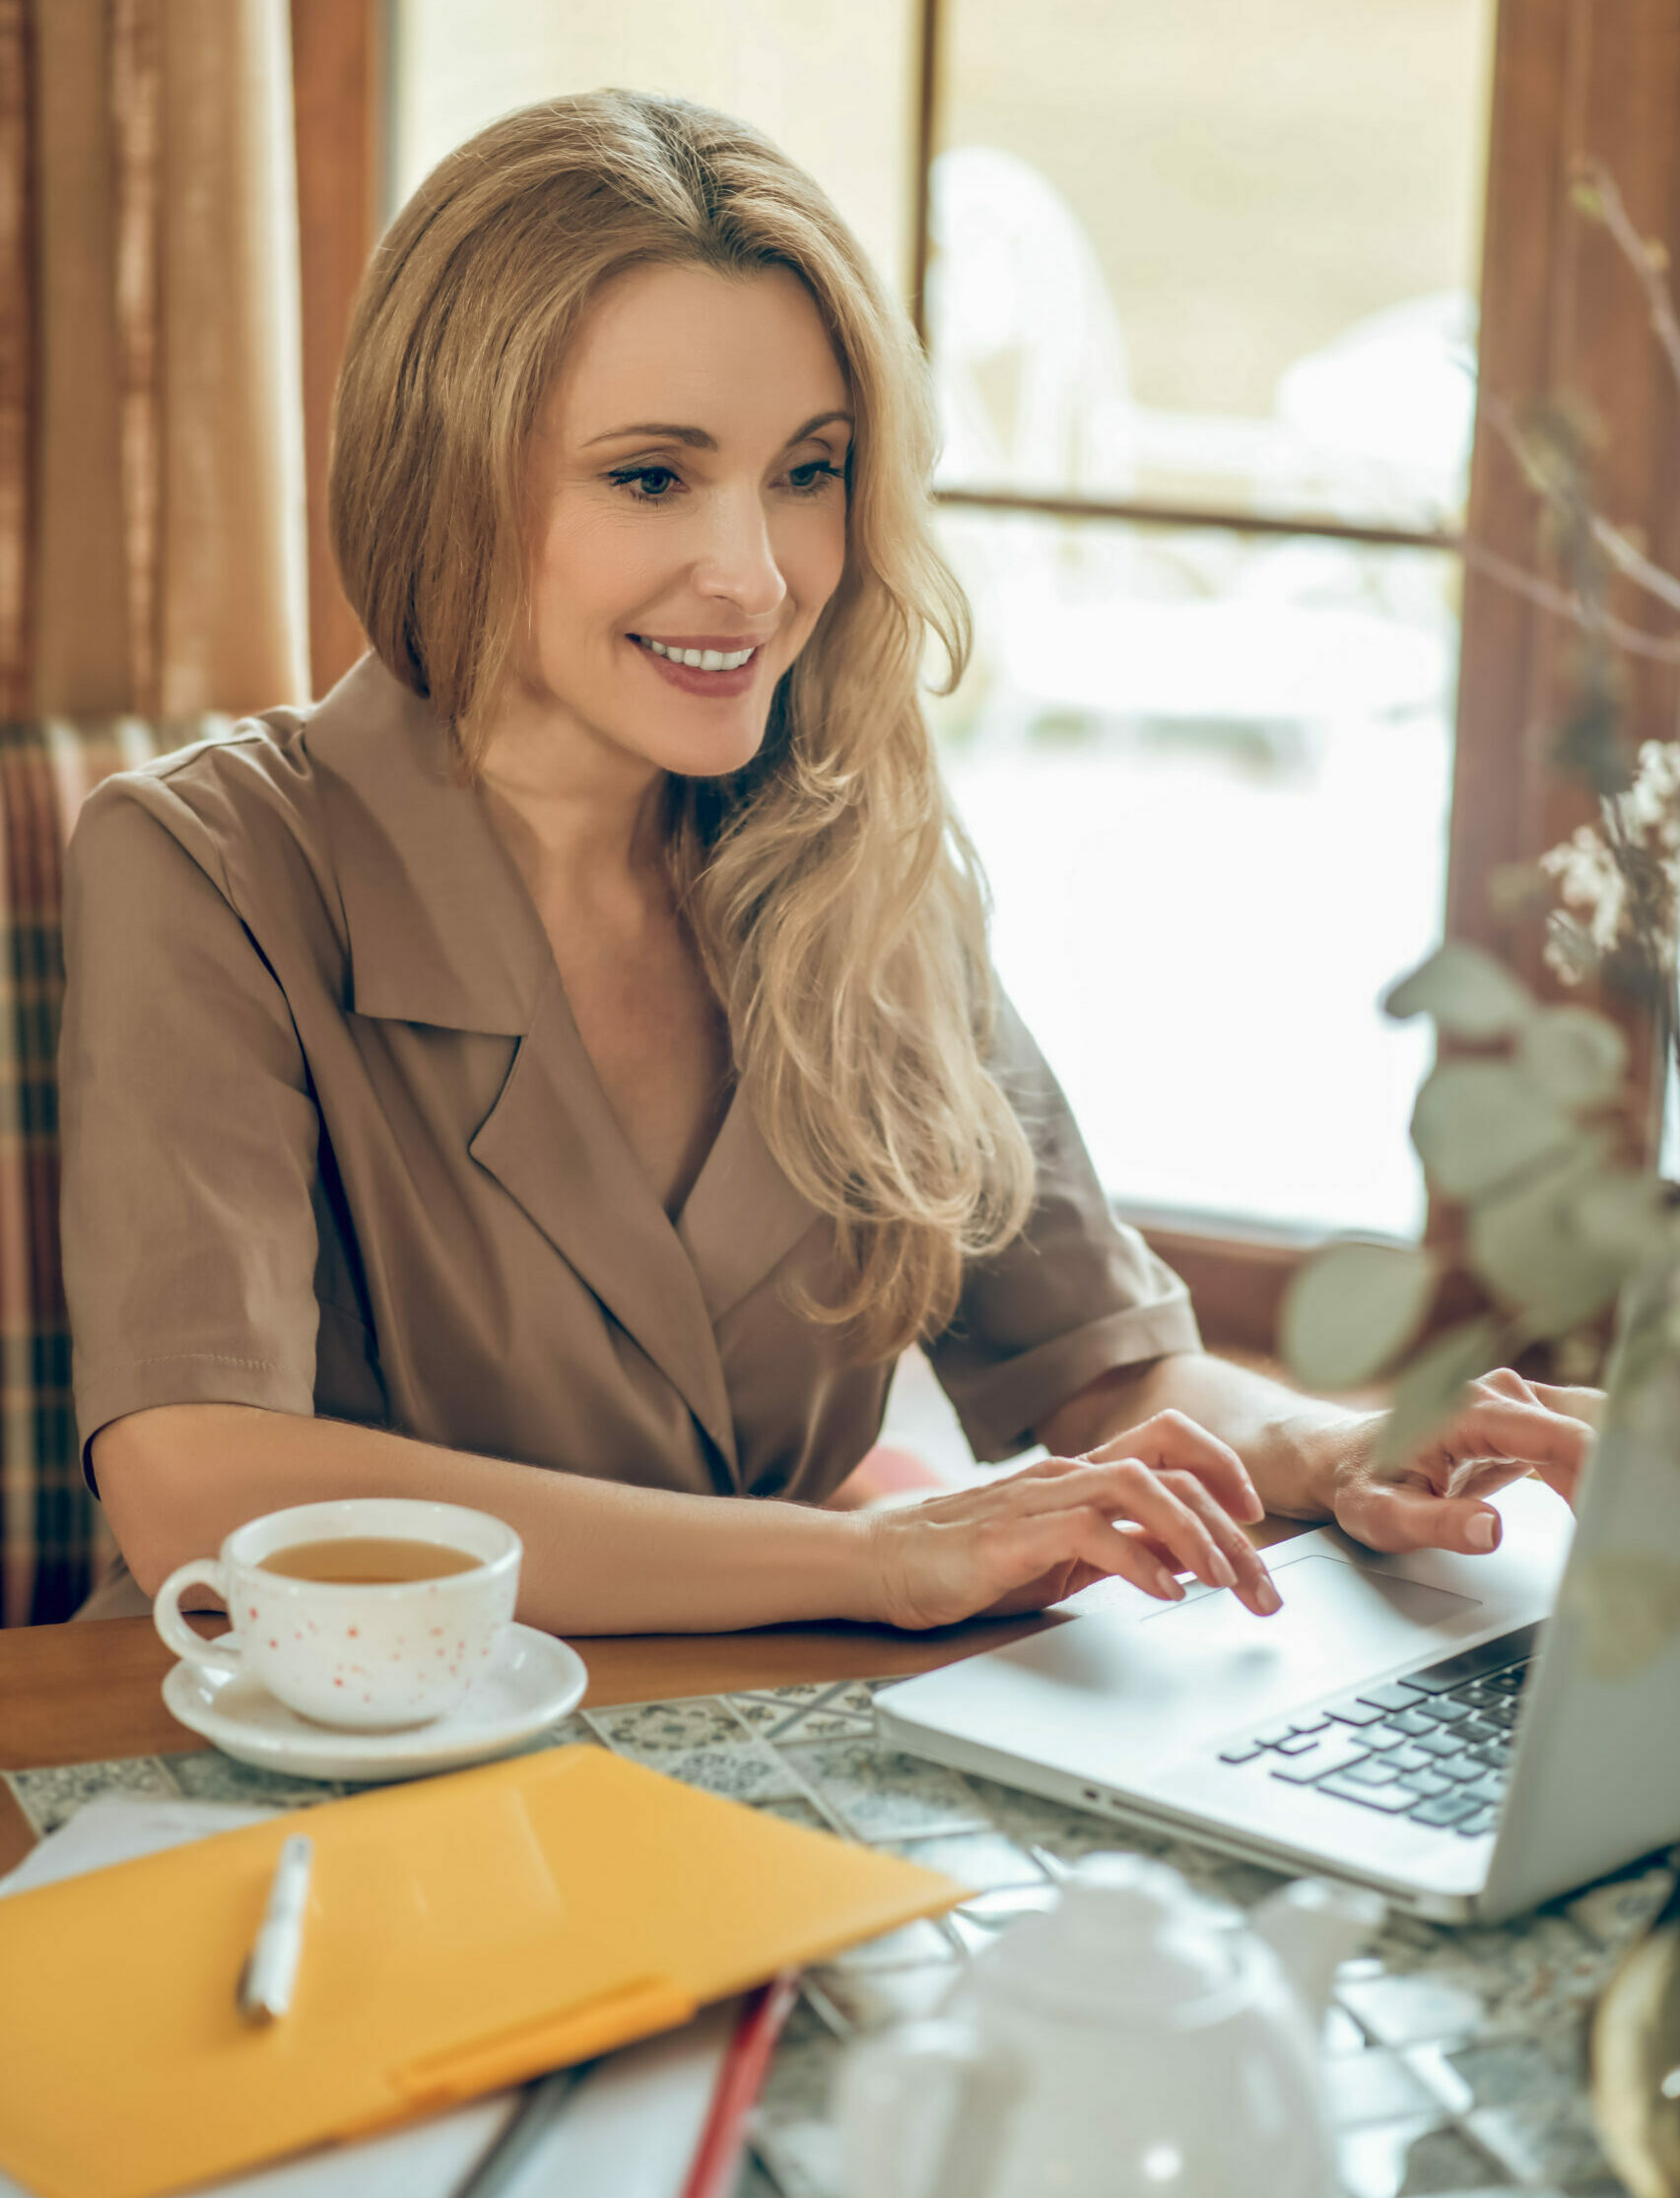 young blonde woman working on taxes for taxact